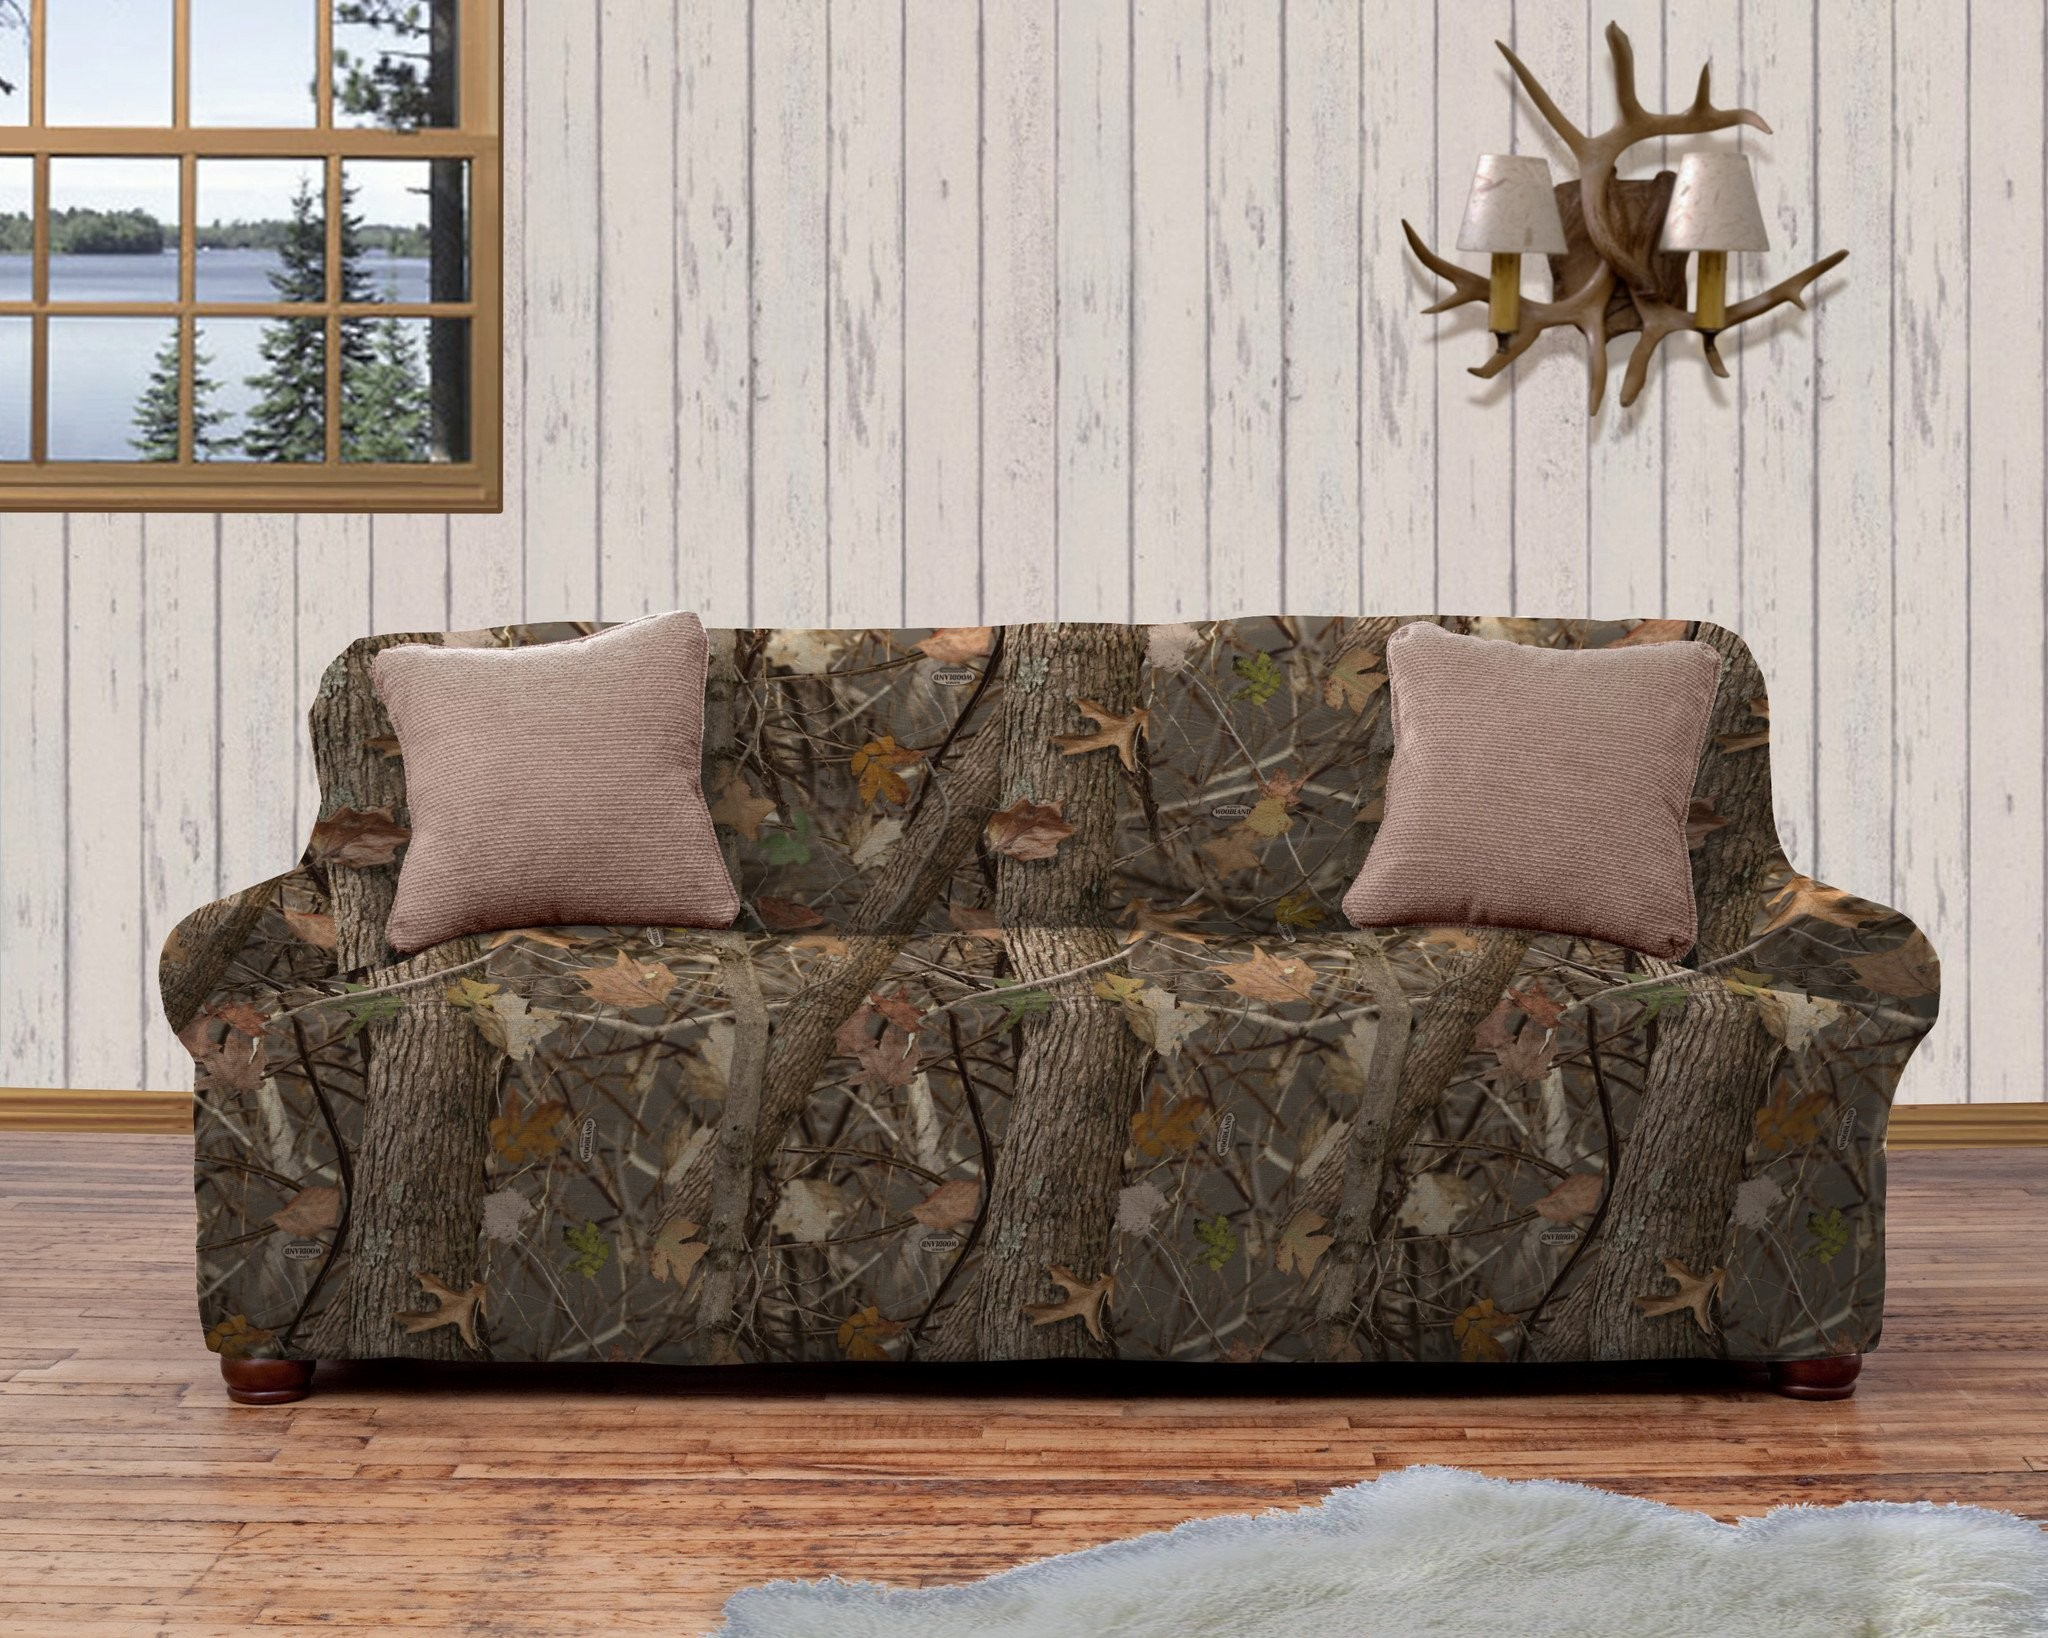 Camo sofa Cover Amazing Kings Camo Woodland Shadow Strapless Slipcover Portrait